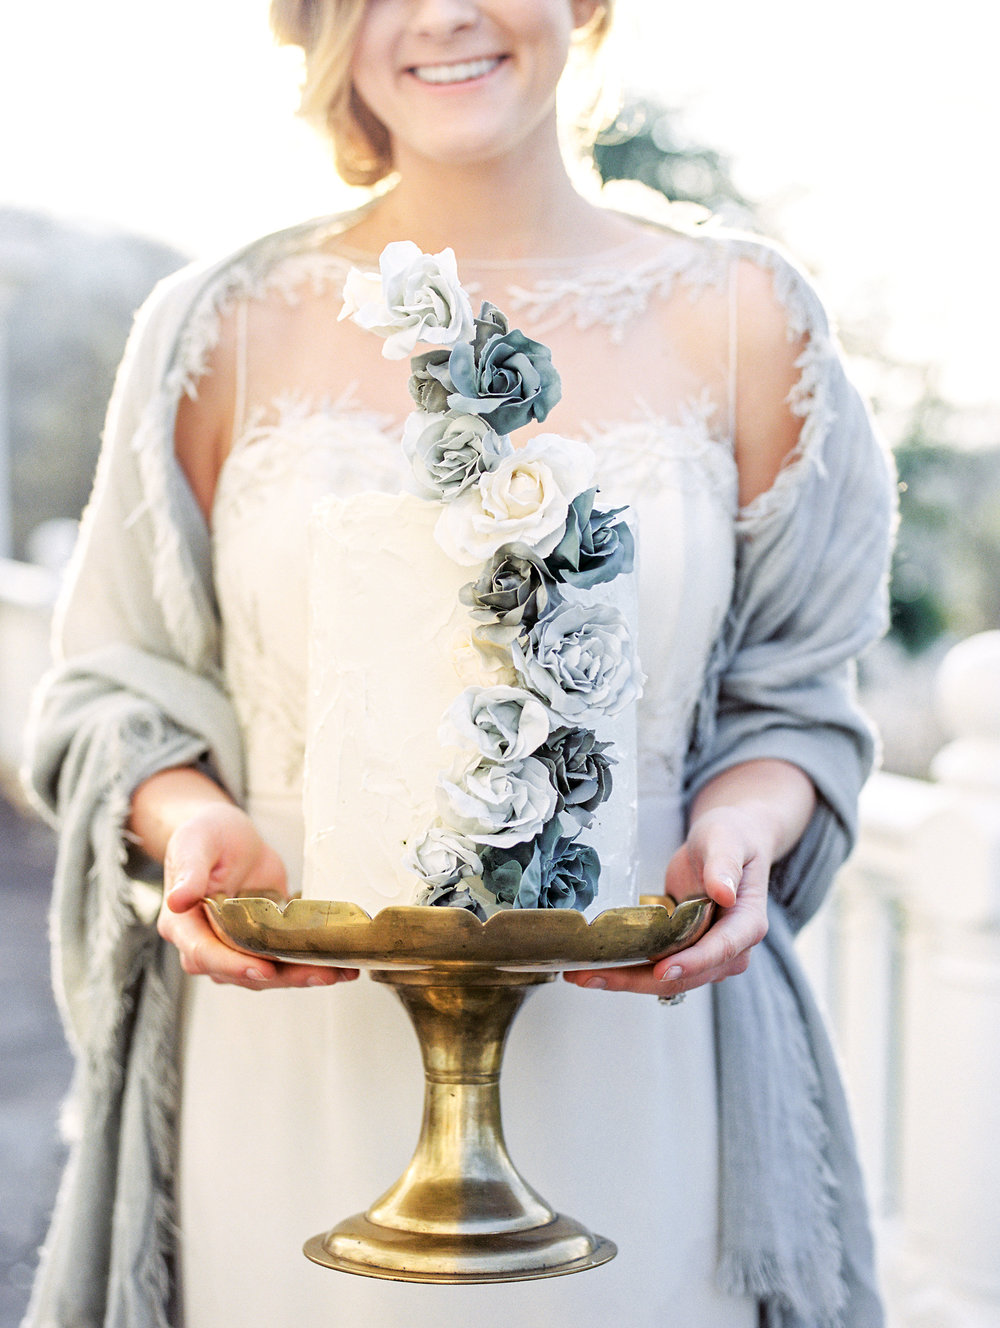 Photography: Lissa Ryan Photography | Planning: The Velvet Veil | Paper & Calligraphy: Spurlé Gul Studio | Cake Catherine George Cakes